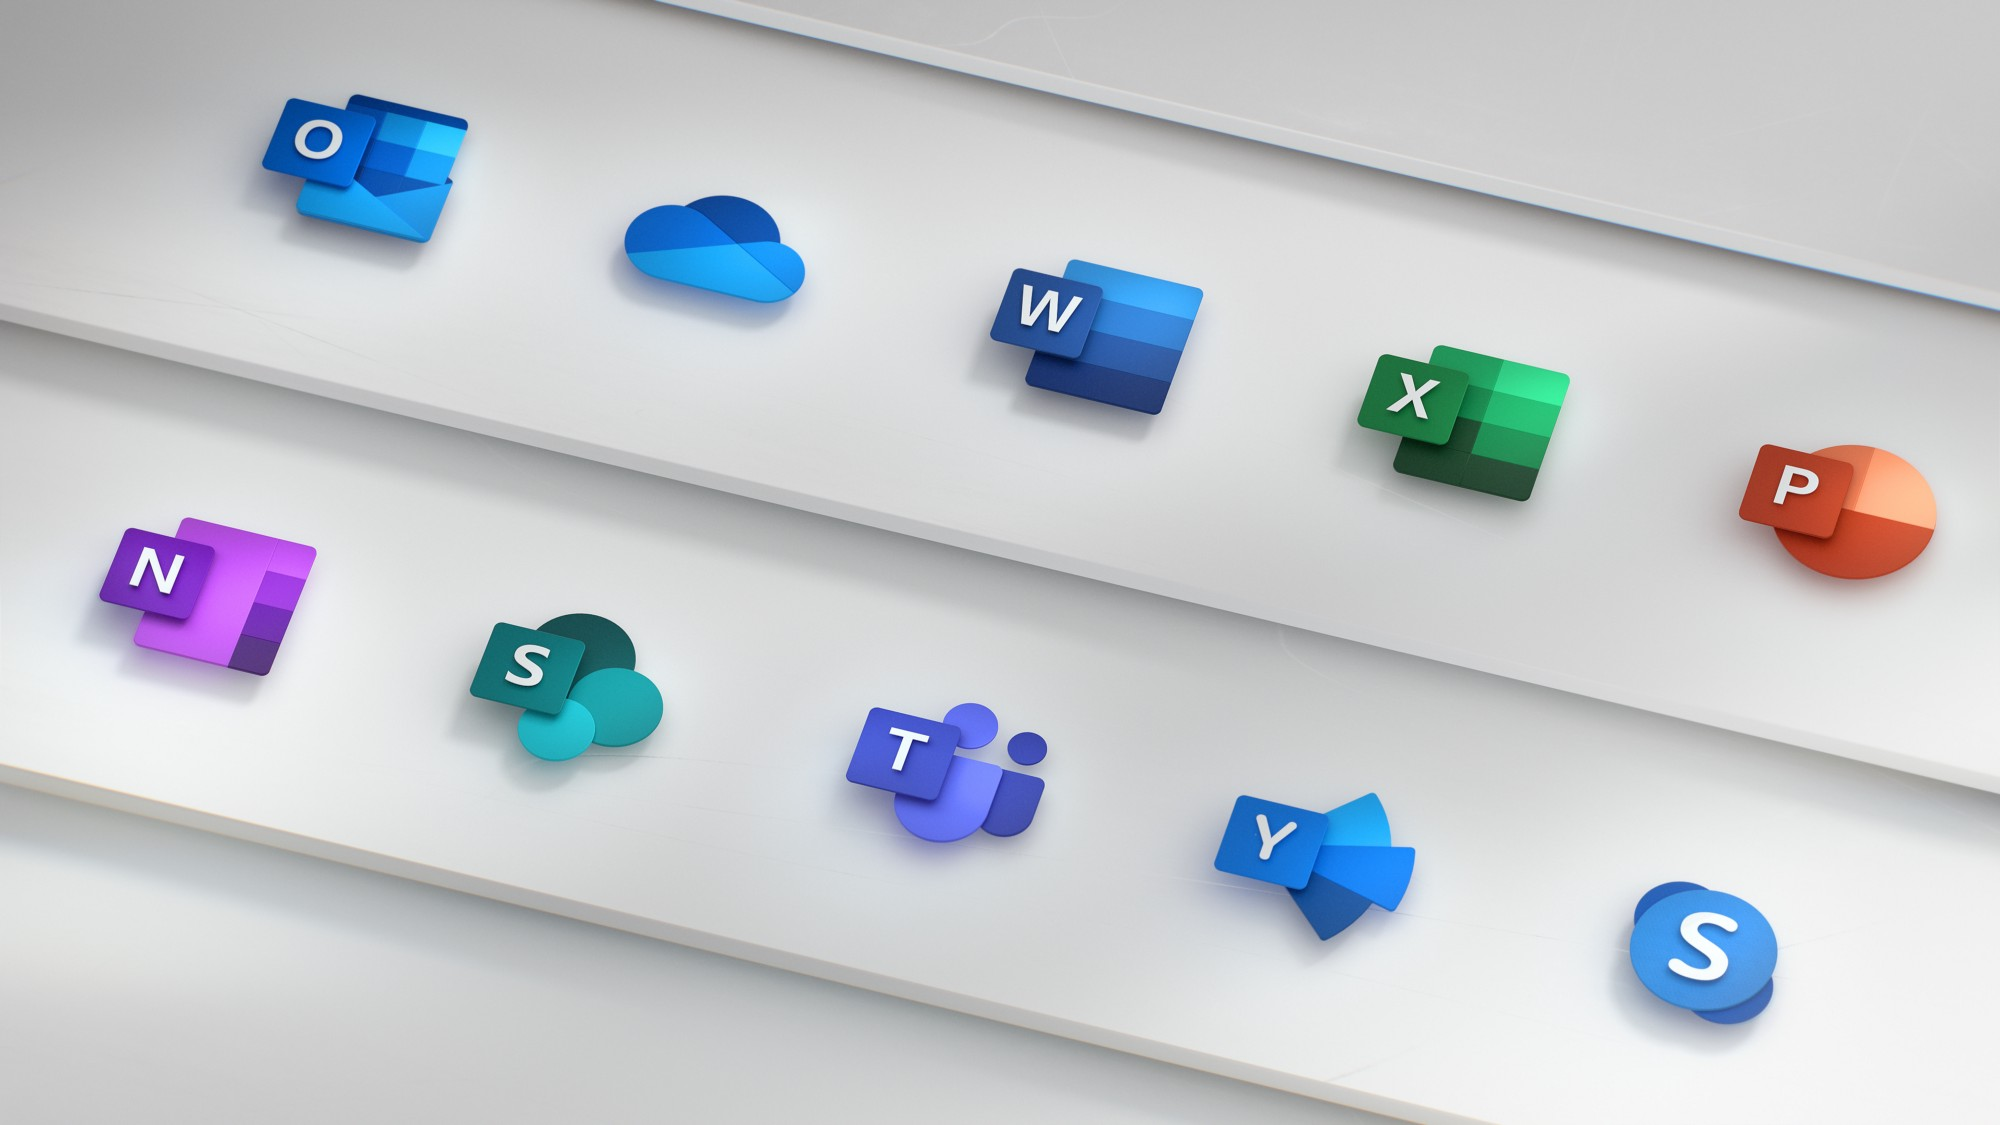 Evolution of new Office icons